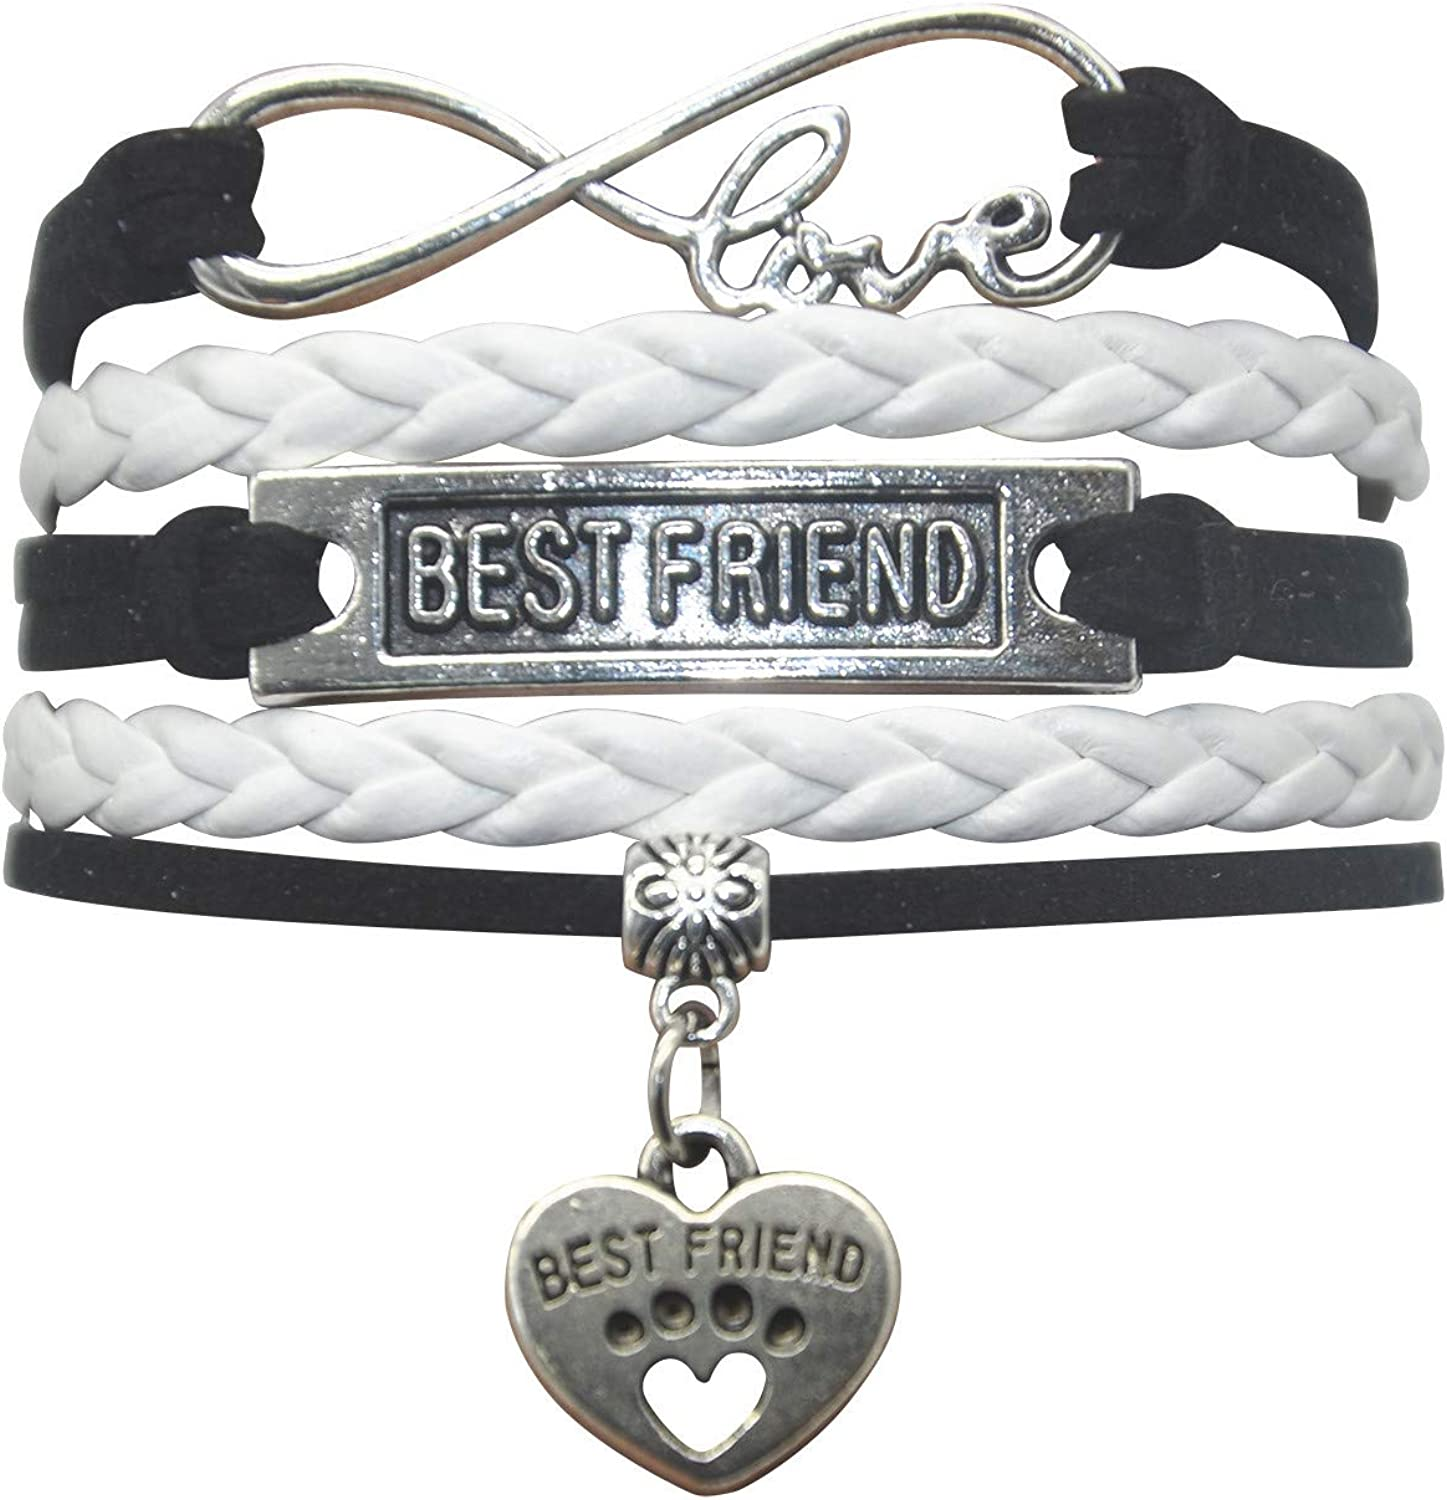 for 2 Best Friends Women Girls Sister or BFF Bracelet for Teen Girl Friend Personalised Cute Distance Matching Jewelry Gifts for Bestfriend Unique Gift Card Lovean Friendship Bracelets